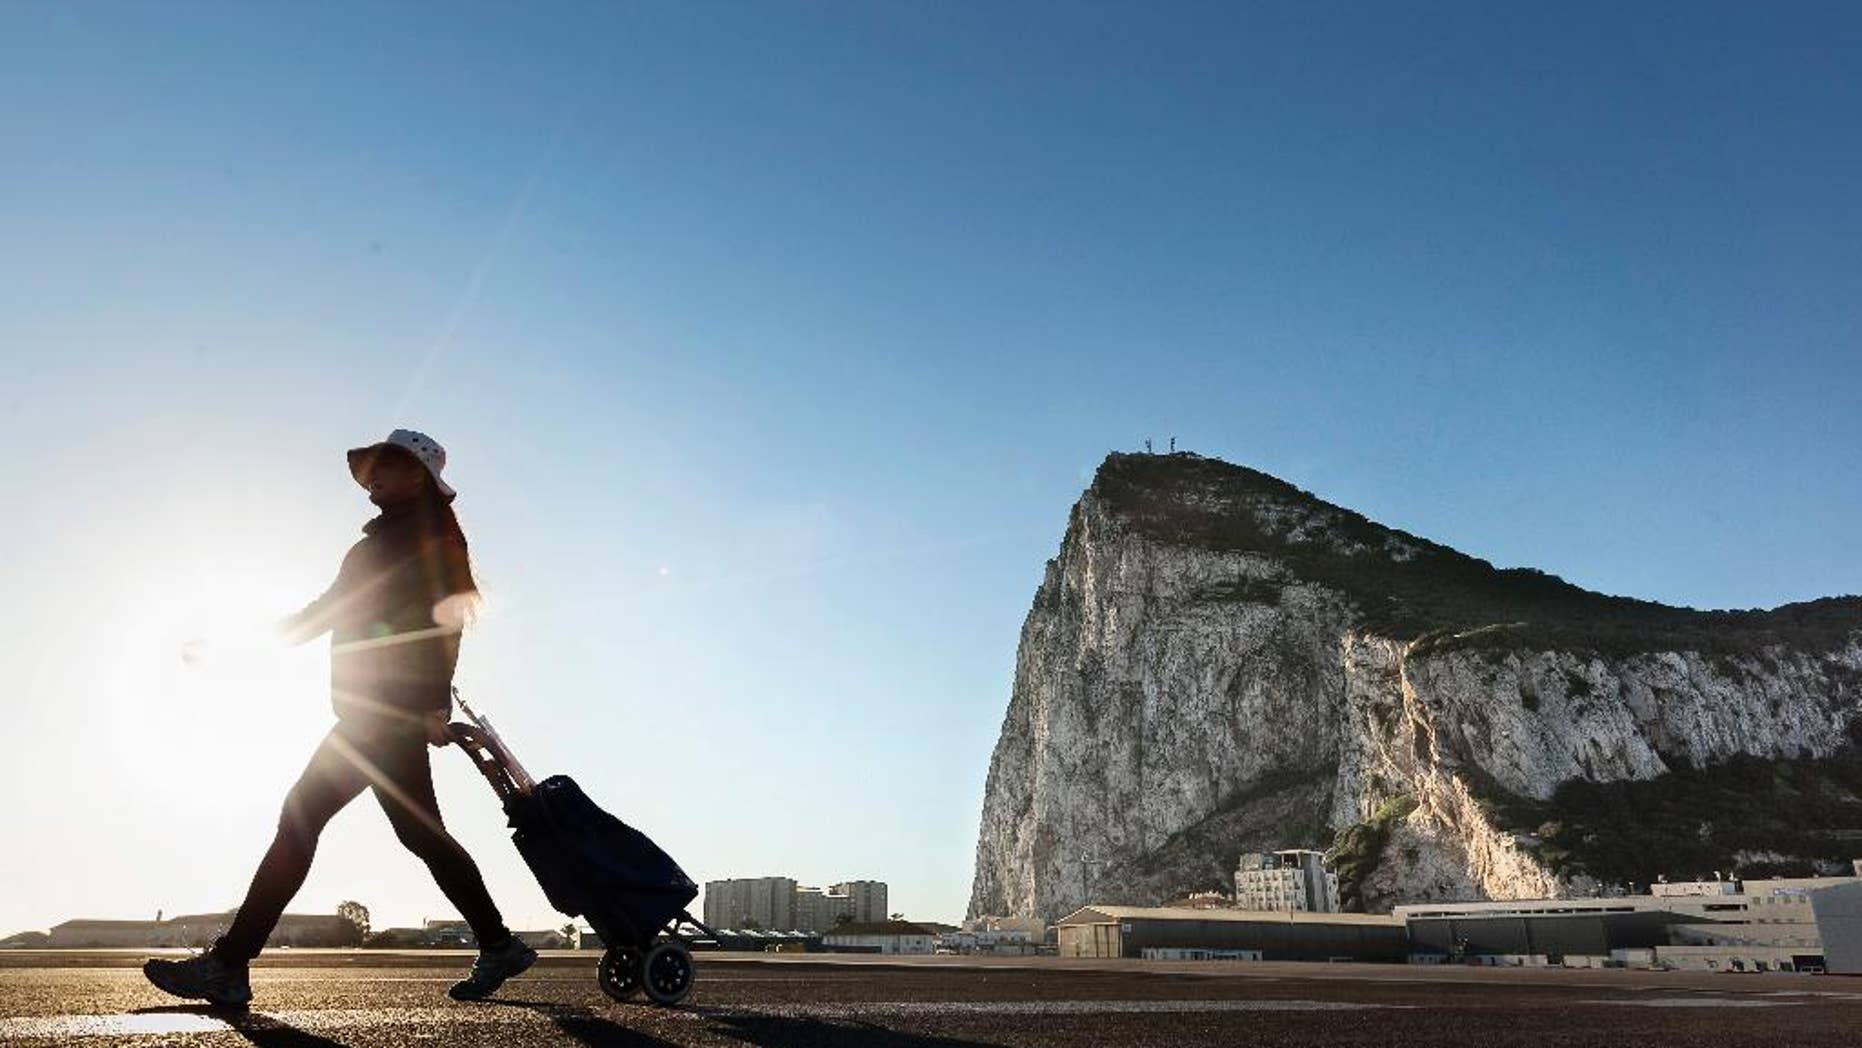 FILE- In this Wednesday, March 1, 2017 file photo, a woman walks on the Spanish side of the border between Spain and the British overseas territory of Gibraltar with the Rock of Gibraltar in the background, in La Linea de la Concepcion, Spain. Deep inside the Rock of Gibraltar is a room known as The Vault. Dug by the British army in World War Two, the room now houses servers that power the websites of dozens of international online gambling companies. Those companies were lured to this speck of British territory on Spain's southern tip by its low taxes and its unimpeded access to the European Union's single market of around 500 million people. Britain's looming departure from the EU, therefore, has cast a cloud over Gibraltar's future because Brexit could see it shut off from the rest of the EU.(AP Photo/Daniel Ochoa de Olza, File)